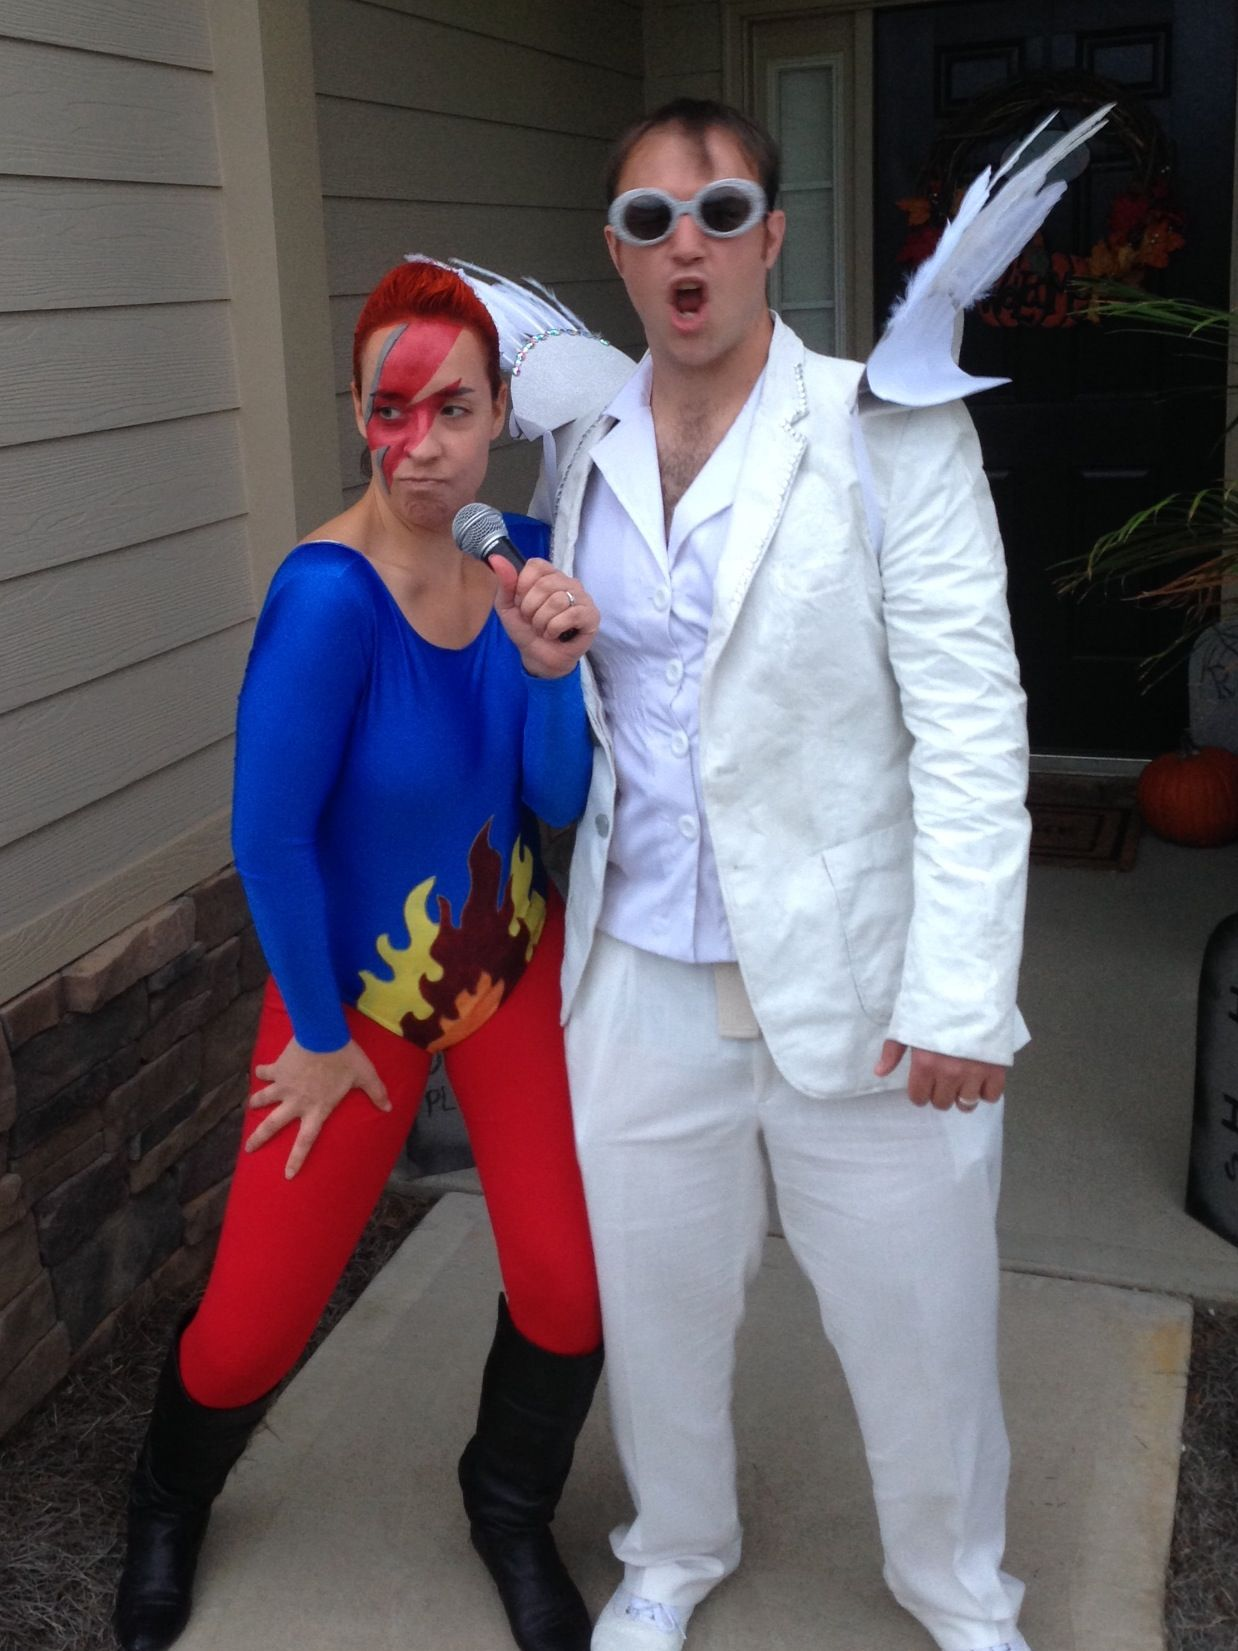 DIY David Bowie and Elton John costumes